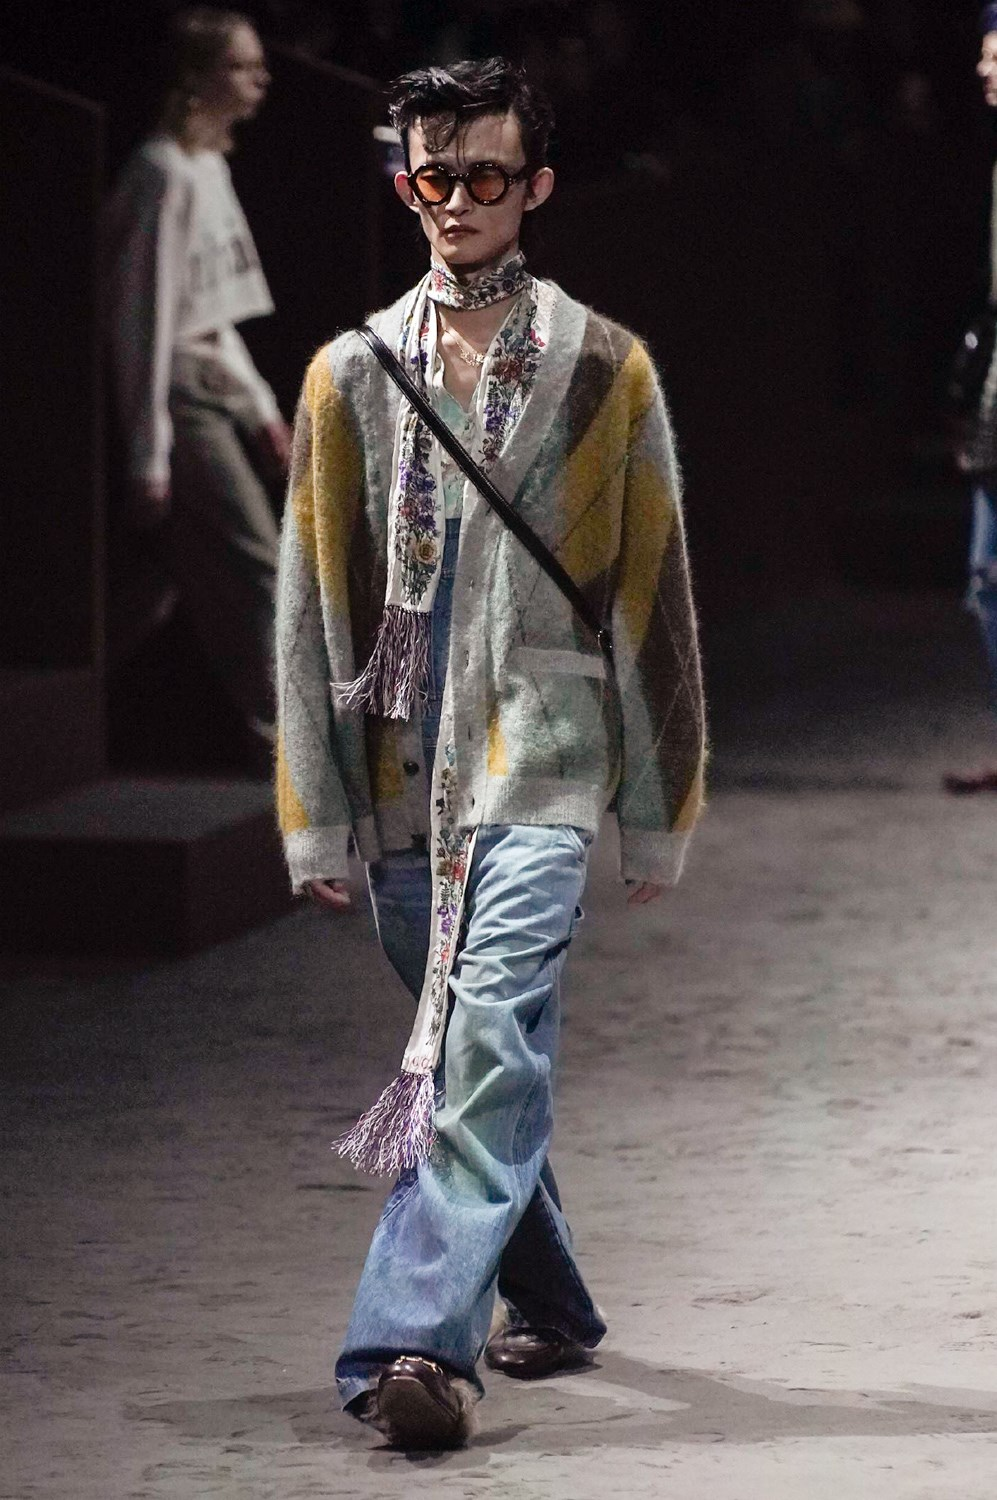 Gucci & Marco de Vincenzo Fall 2020 Fashion Show Review - Banishing Stereotypes